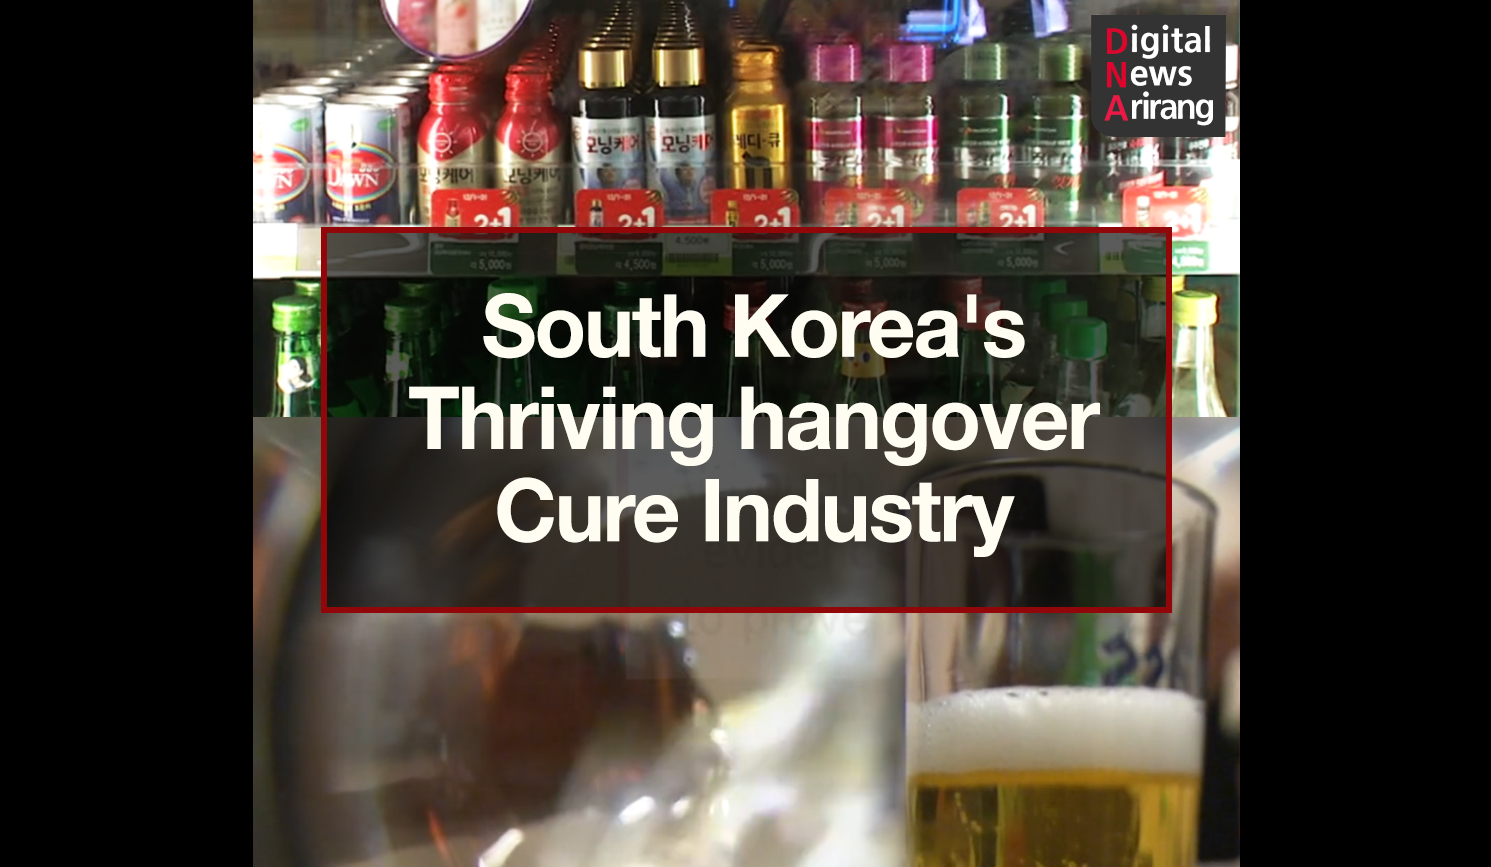 [DNA] South Korea's Thriving hangover Cure Industry